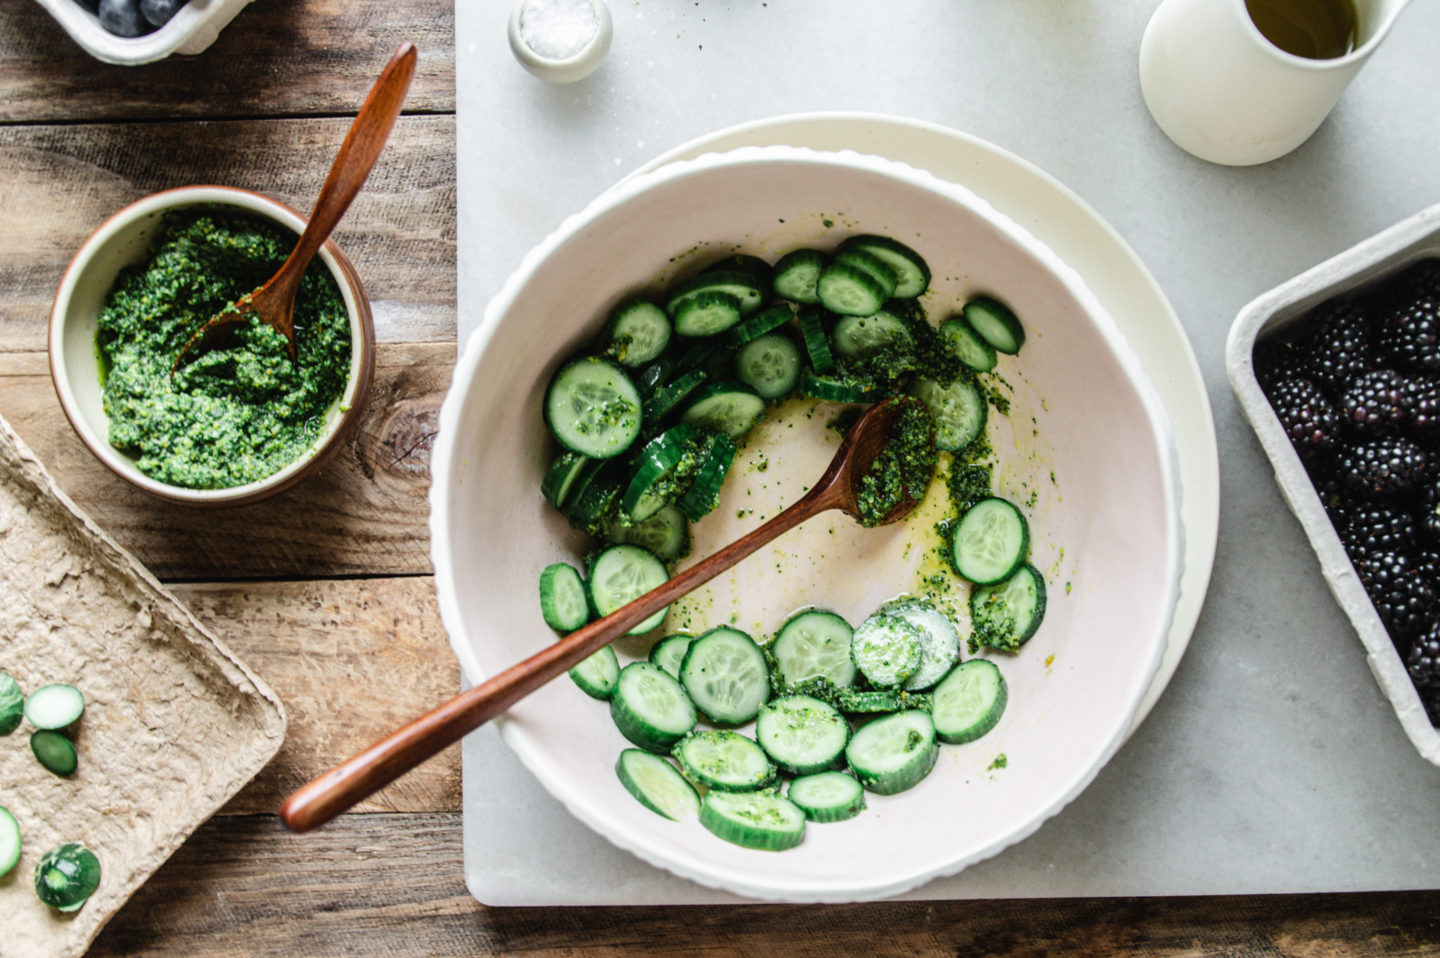 mix the sliced cucumbers, pesto, olive oil, and vinegar in a bowl to make the green goddess dressing